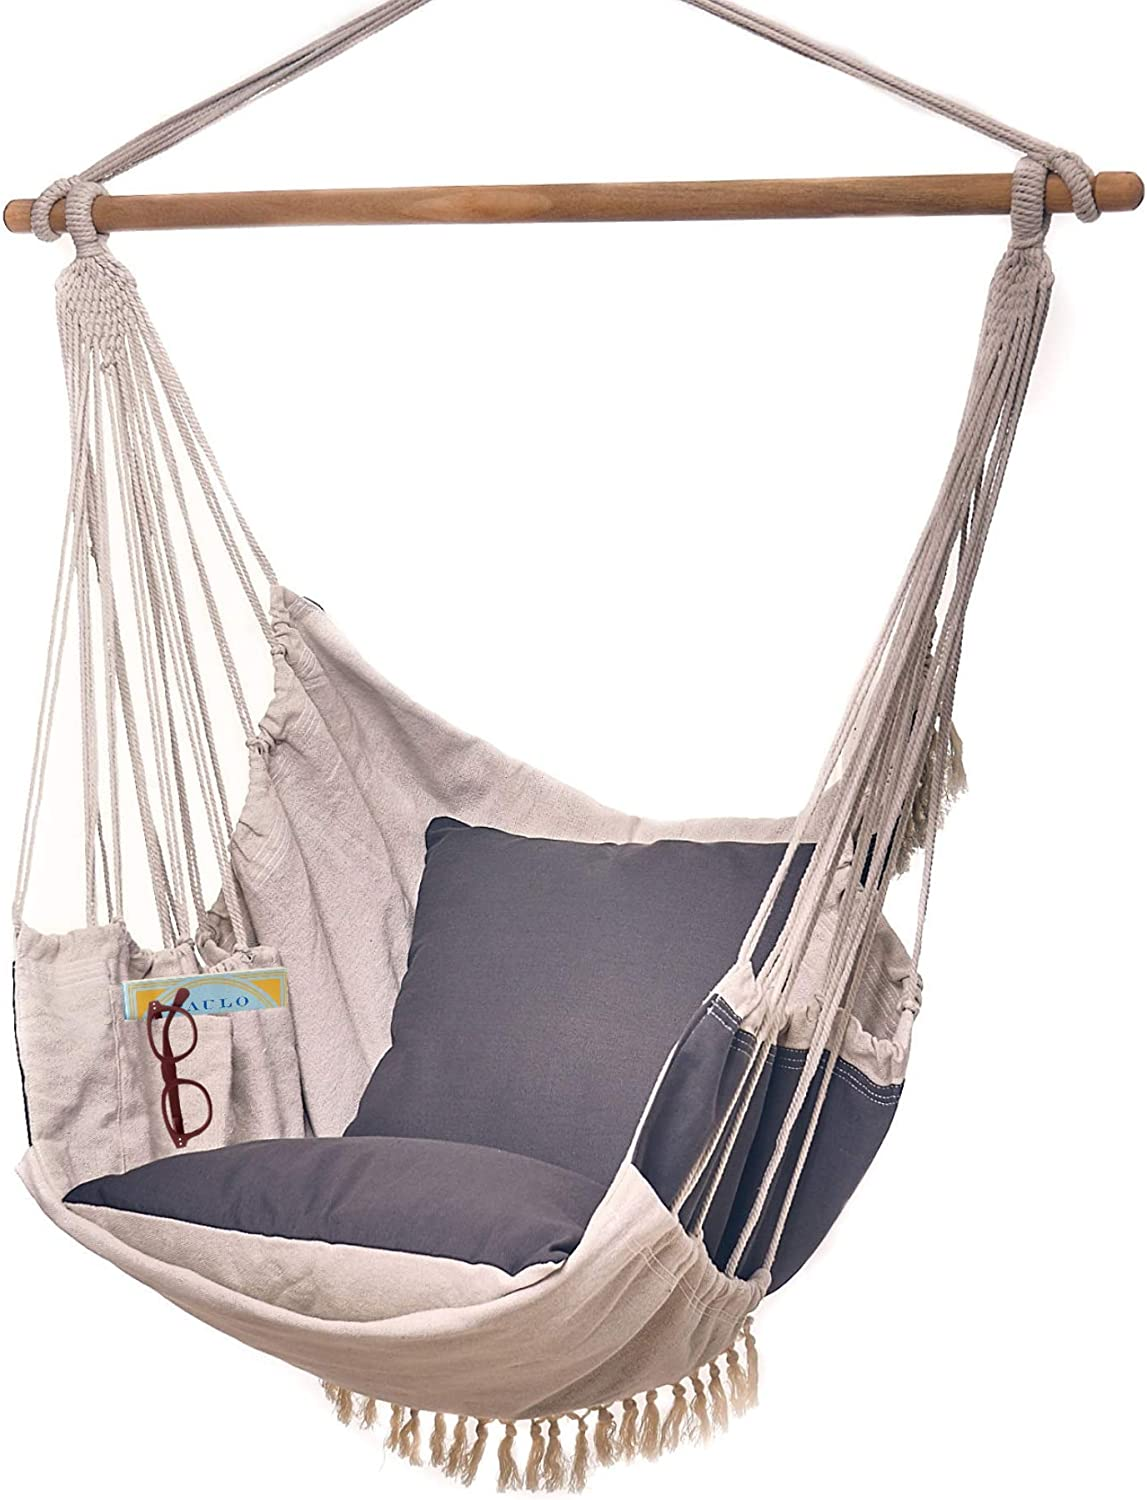 Amazon Com Bdecoru Hanging Hammock Chair Large Swing Chair Sitting And Reclining Positions 2 Layer Fabric For Extreme Durability 2 Tone Beige And Gray Plus 2 Cushions And Side Pocket Indoor Outdoor